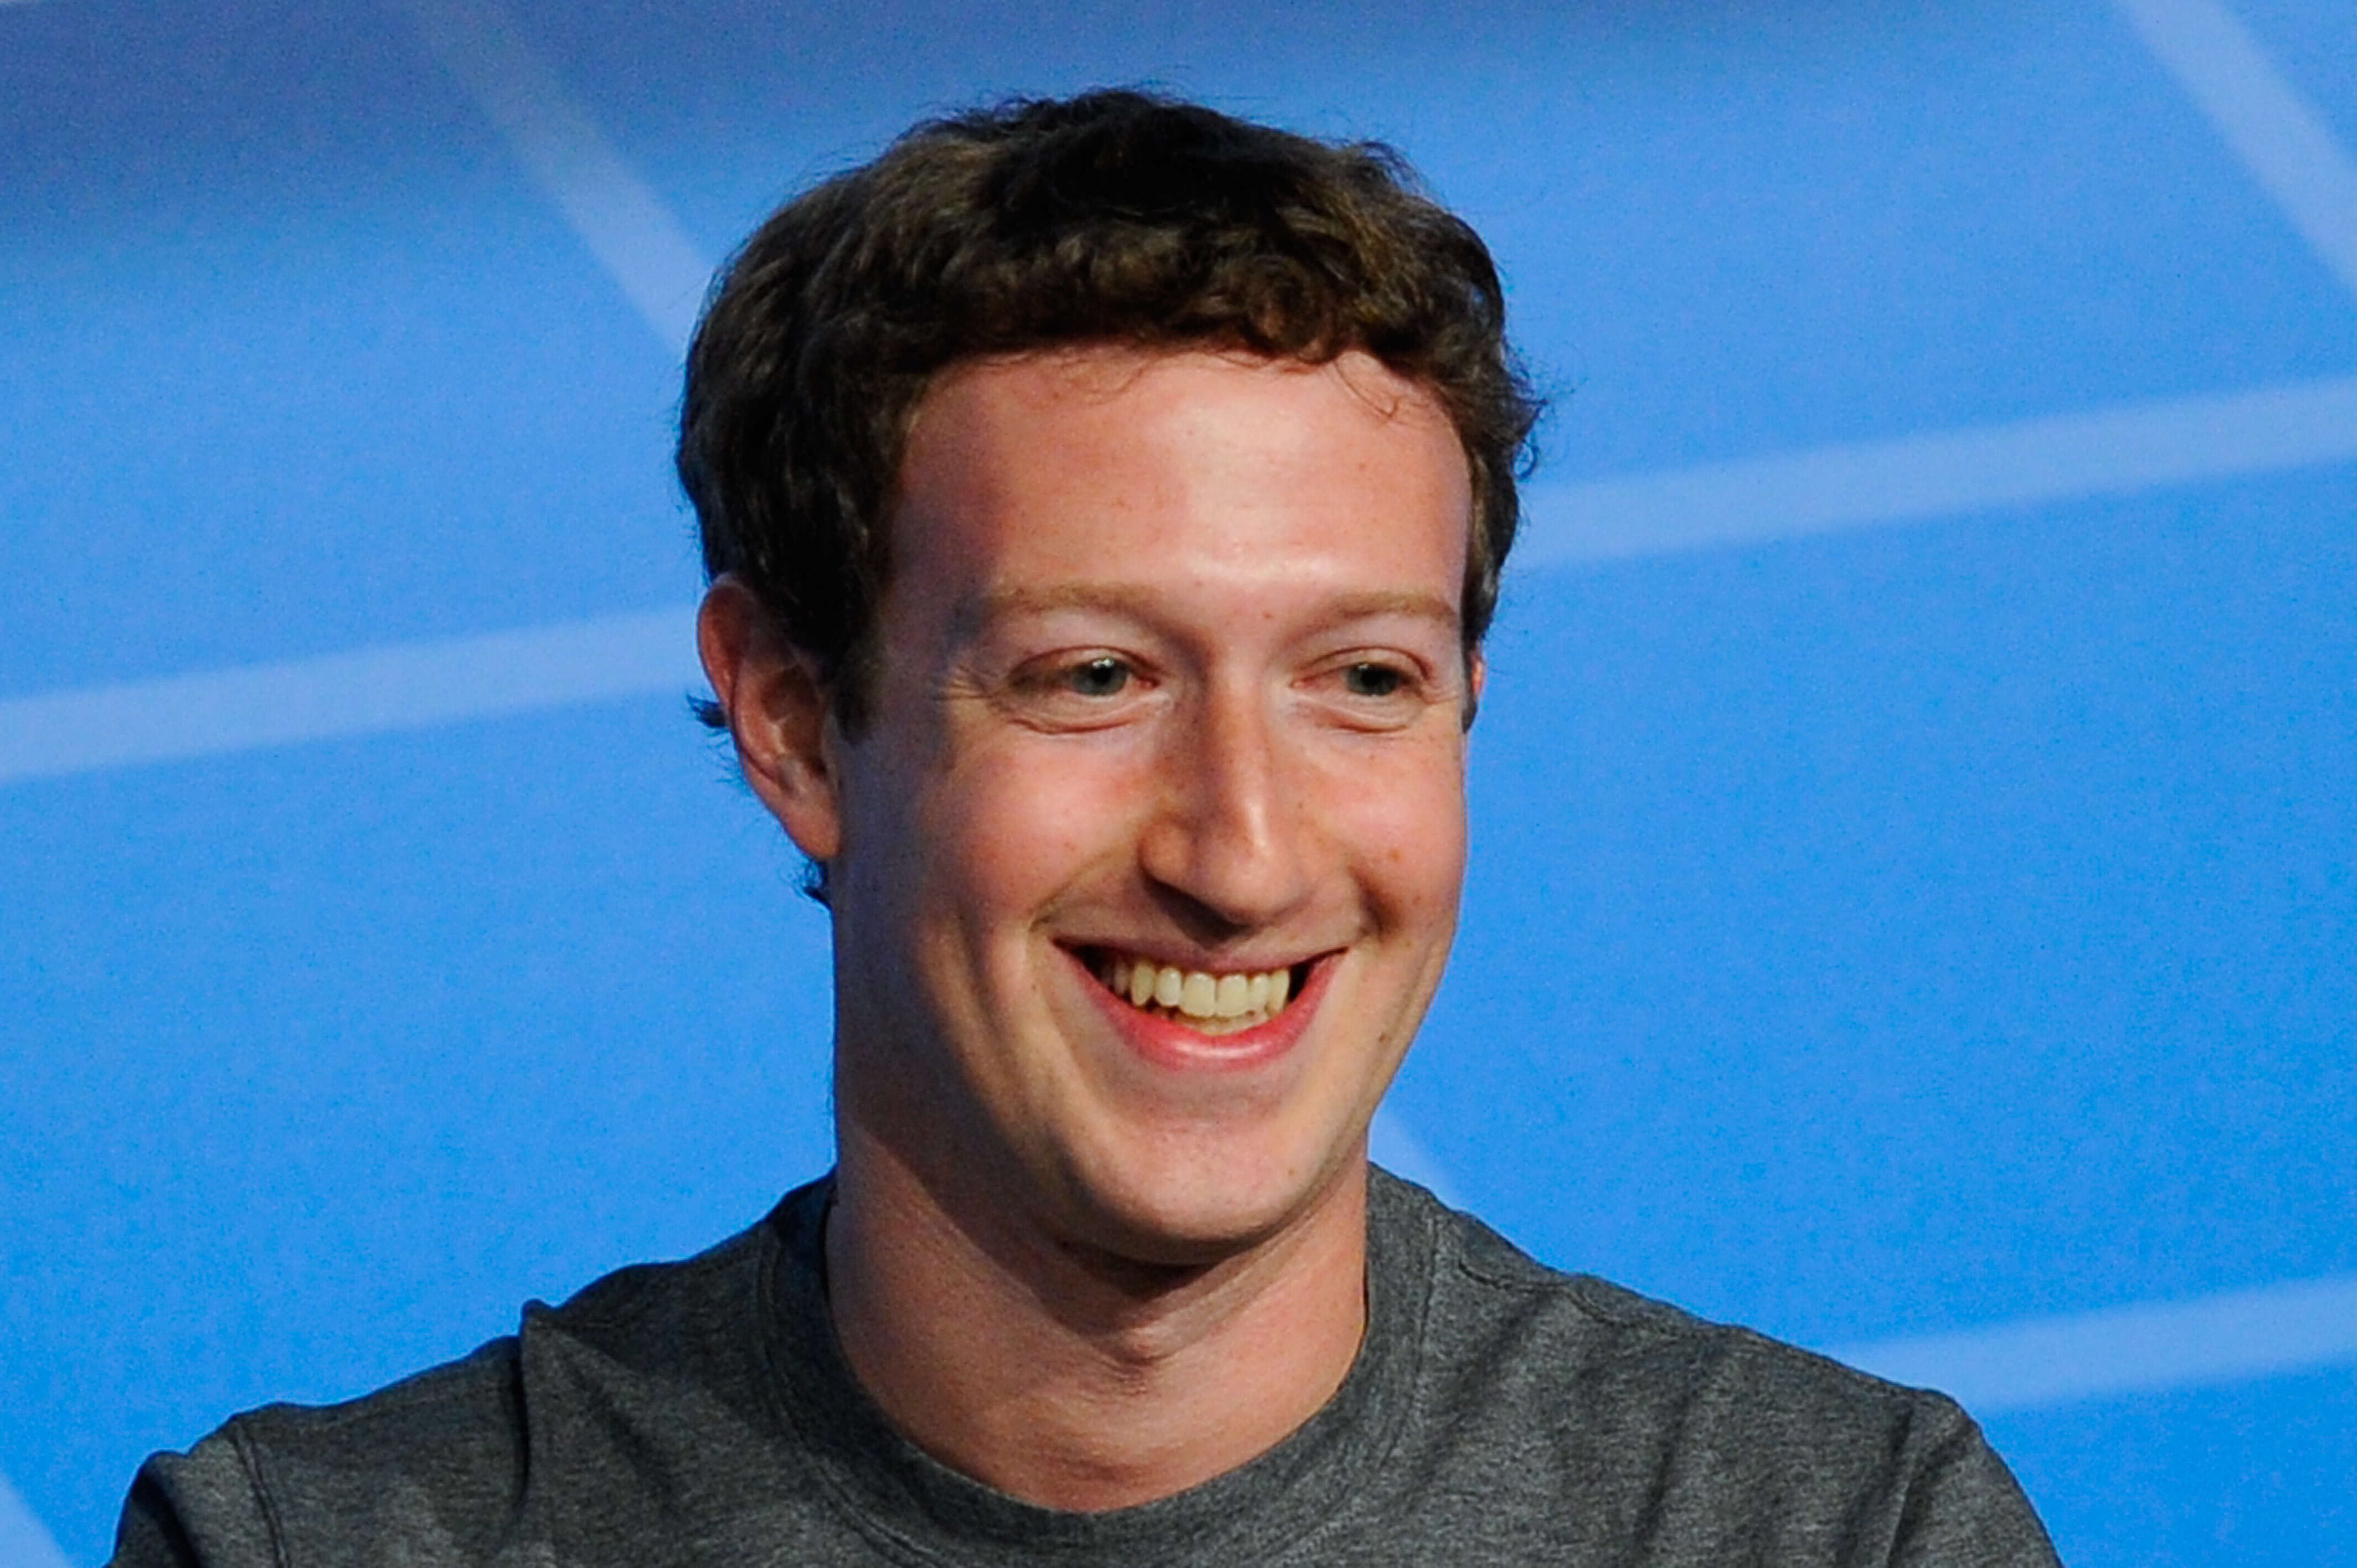 GettyImages 474639991 Mark Zuckerberg Just Earned Insane Amount Of Money In One Hour